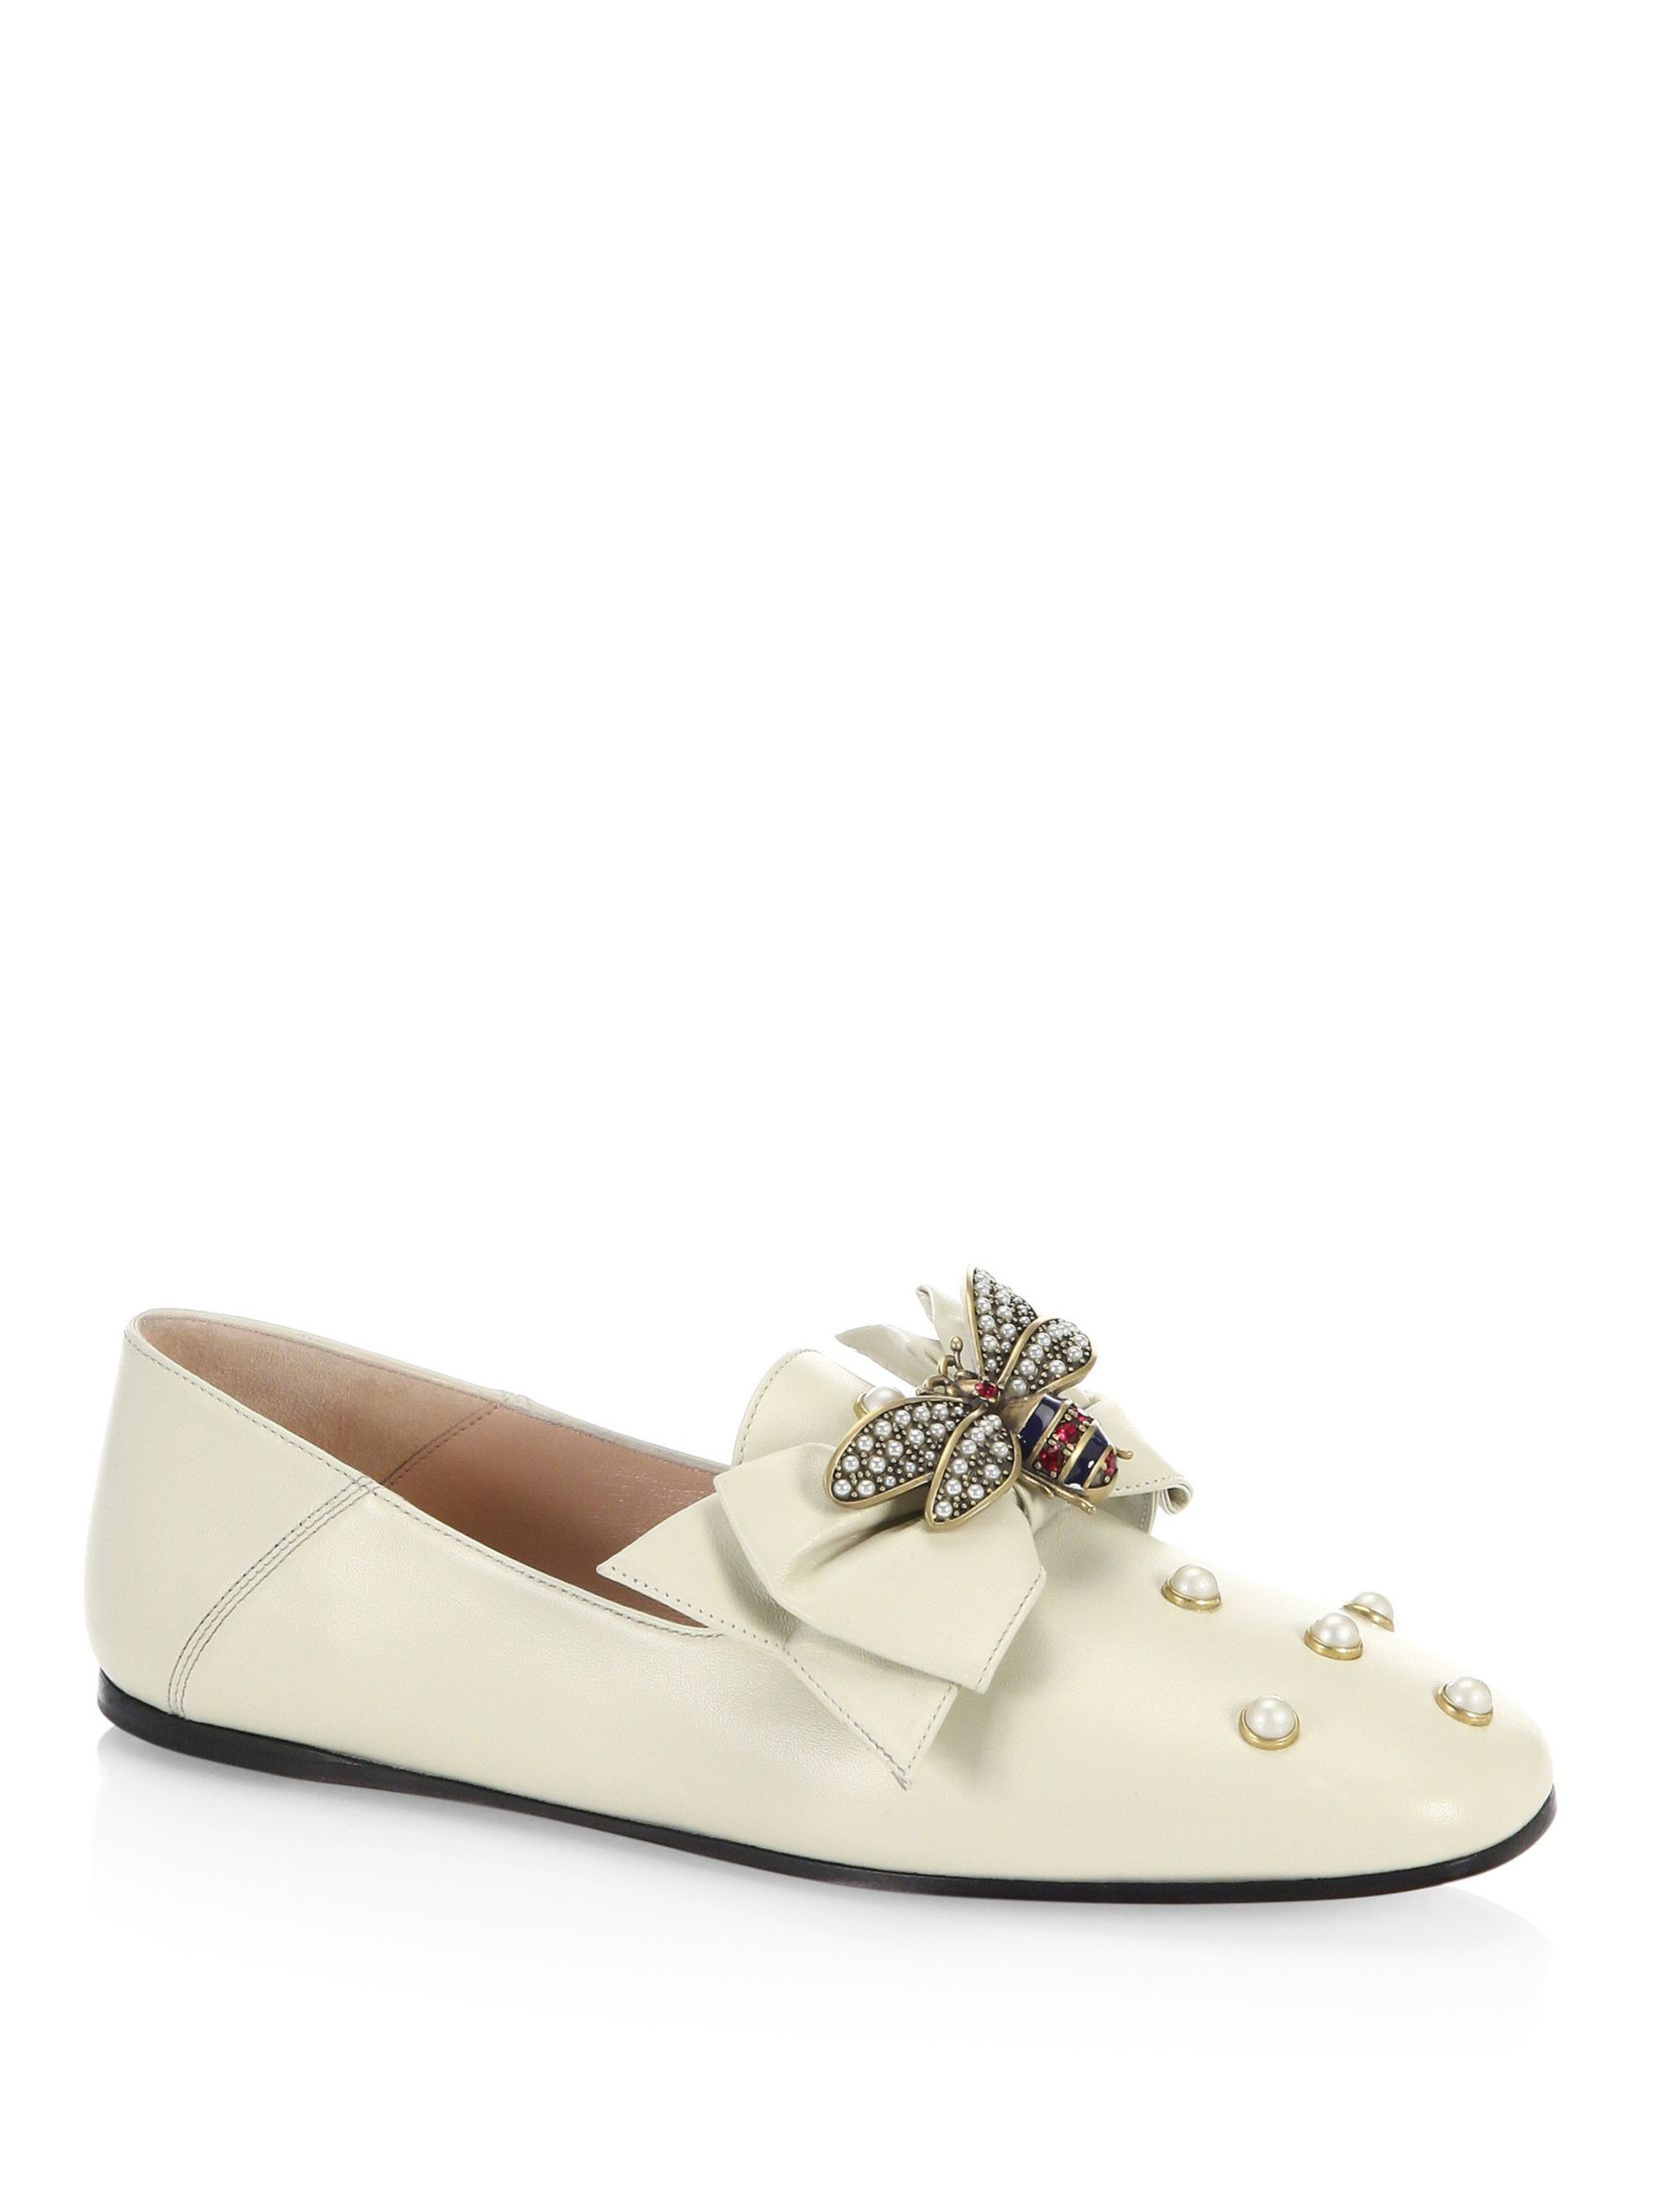 Gucci Queen Margaret Bee Leather Flats